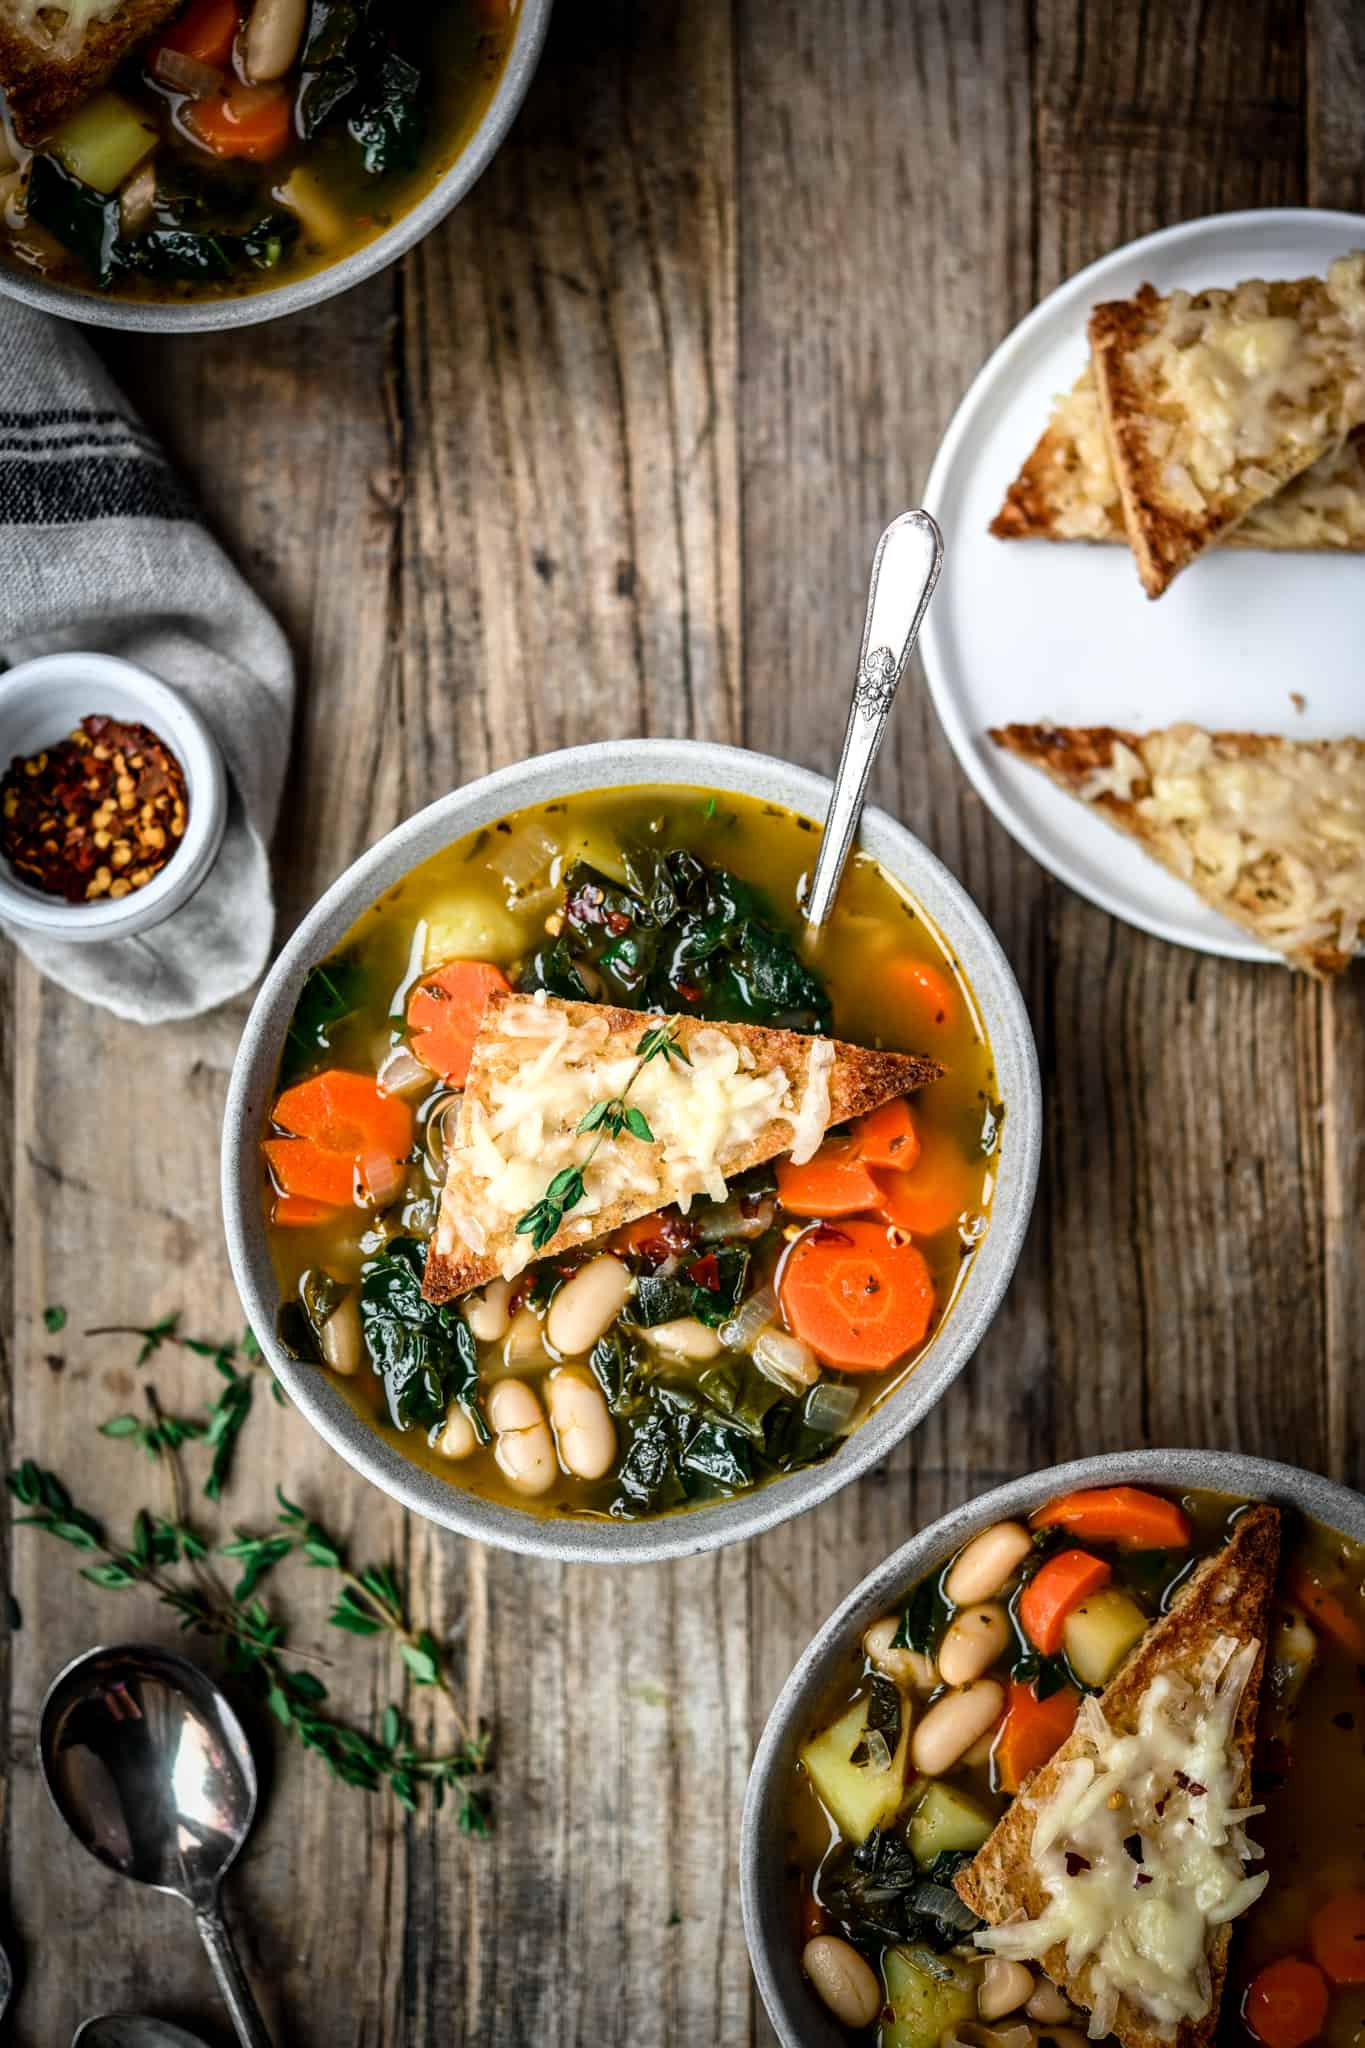 Overhead view of white bean kale soup in a grey bowl on a wood table